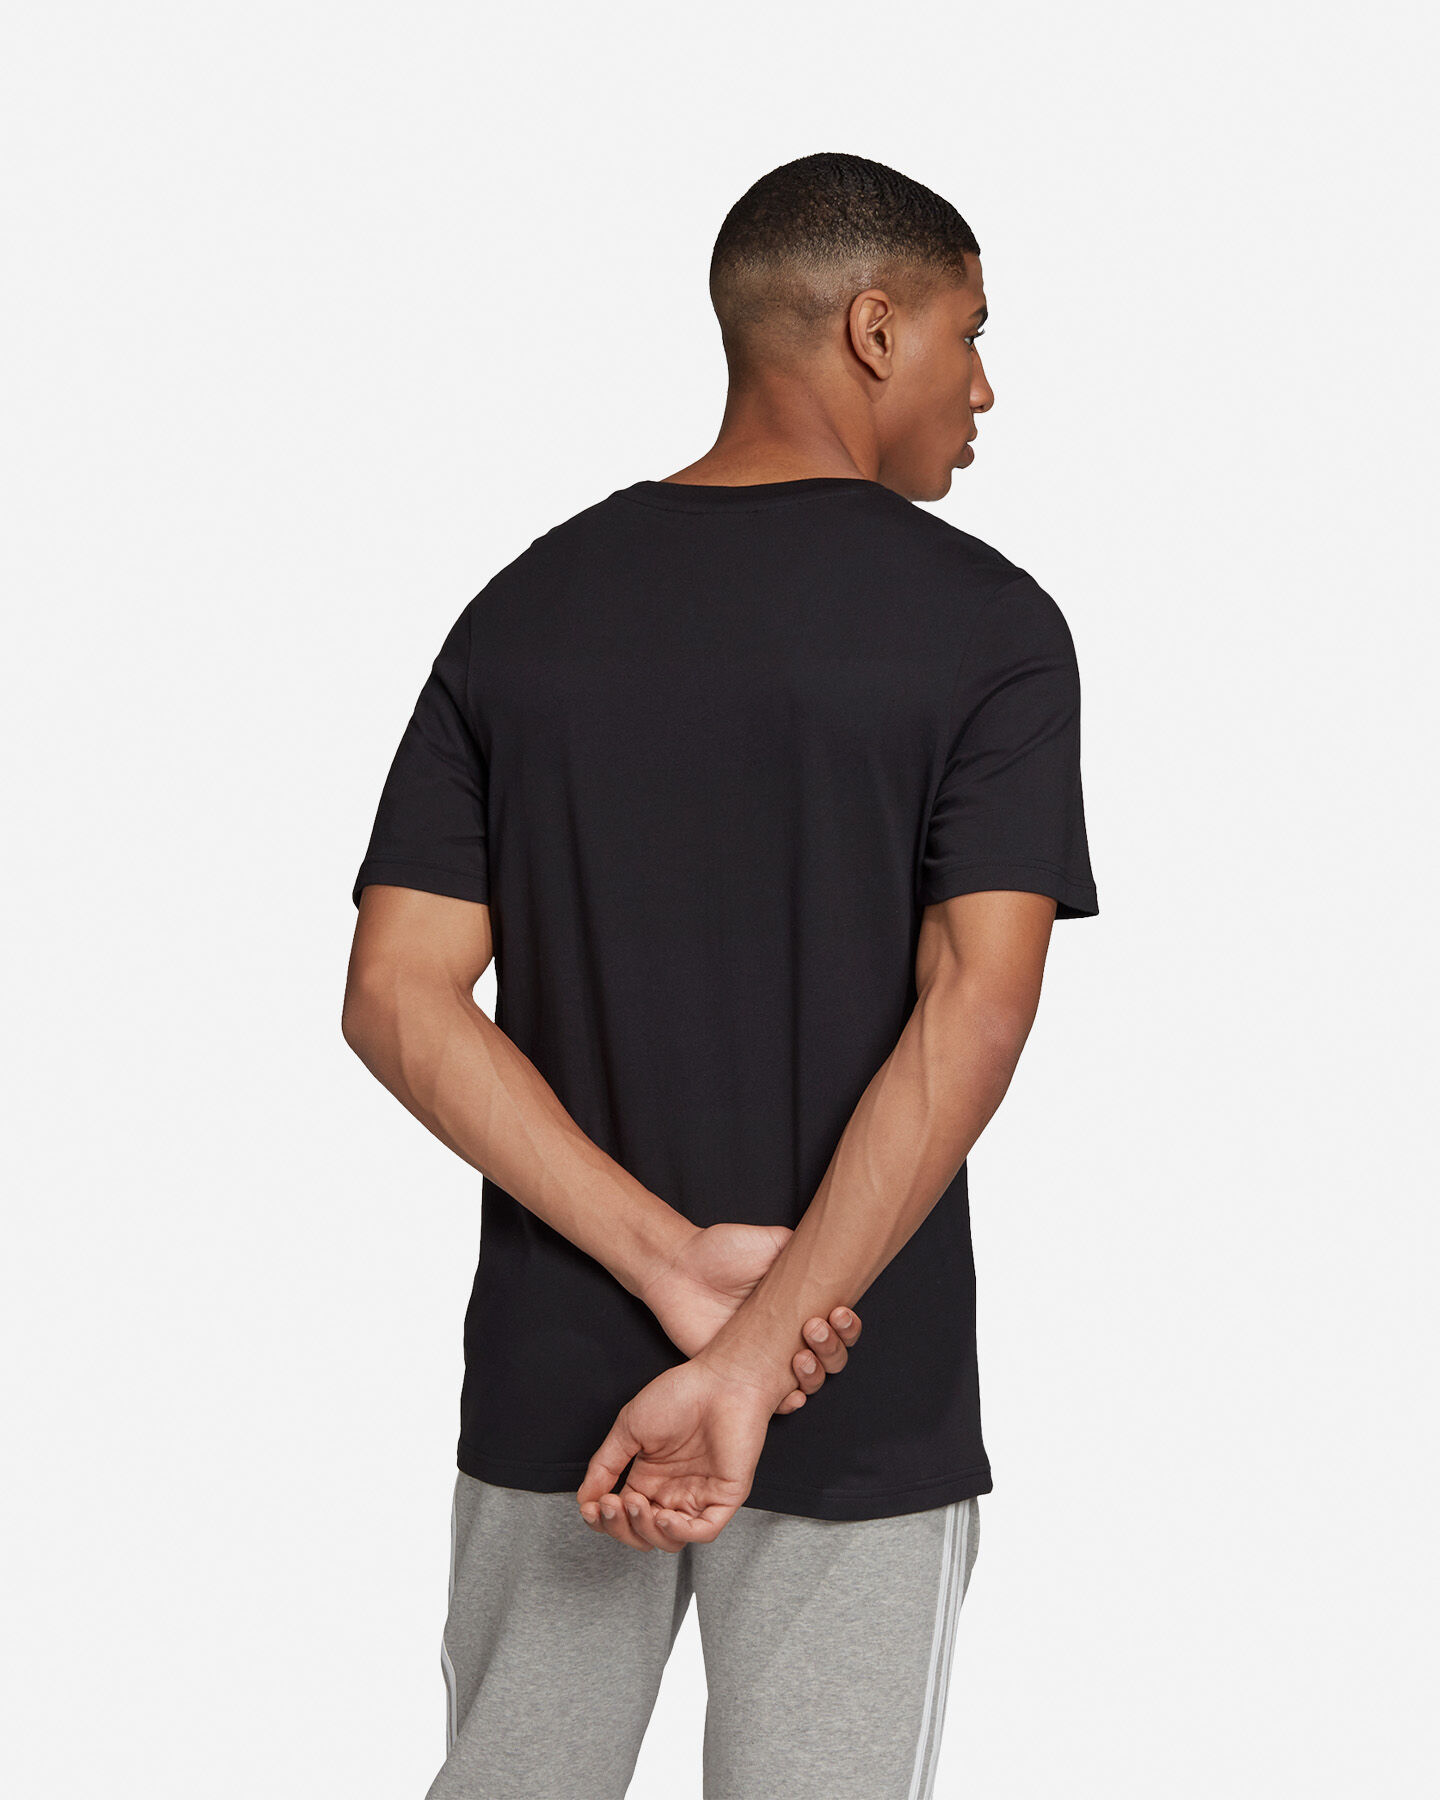 T-Shirt ADIDAS OUTLINE M S5210670 scatto 4